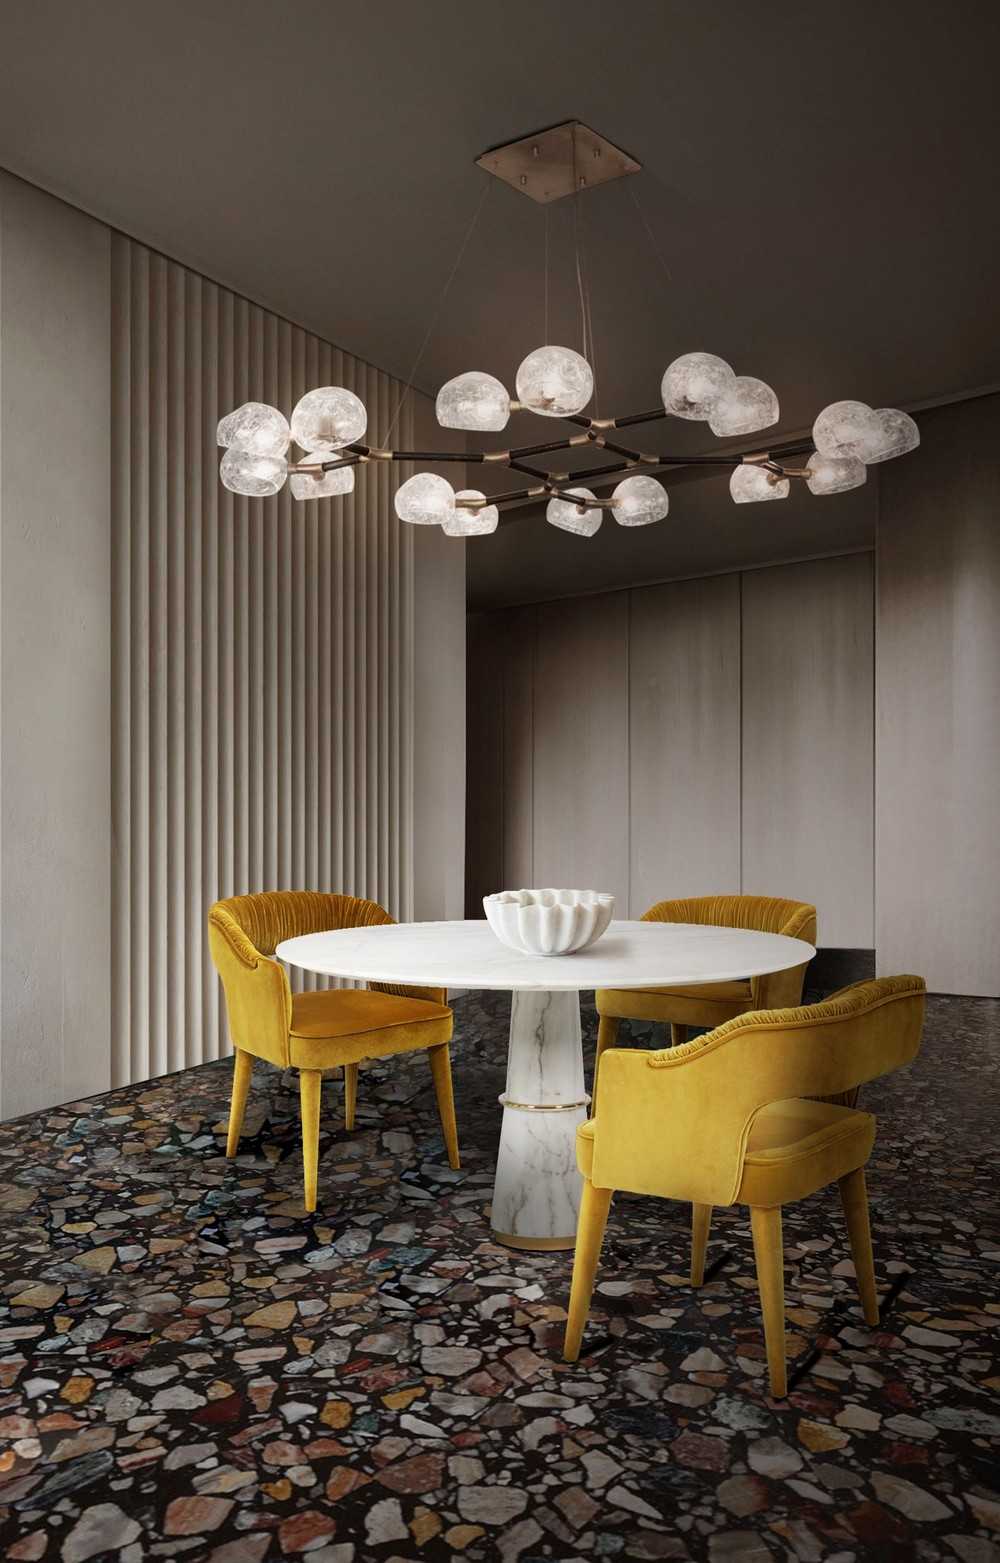 2020 In Retrospective: The Best Dining Tables and Chairs dining tables 2020 In Retrospective: The Best Dining Tables and Chairs 1gPg6 pA